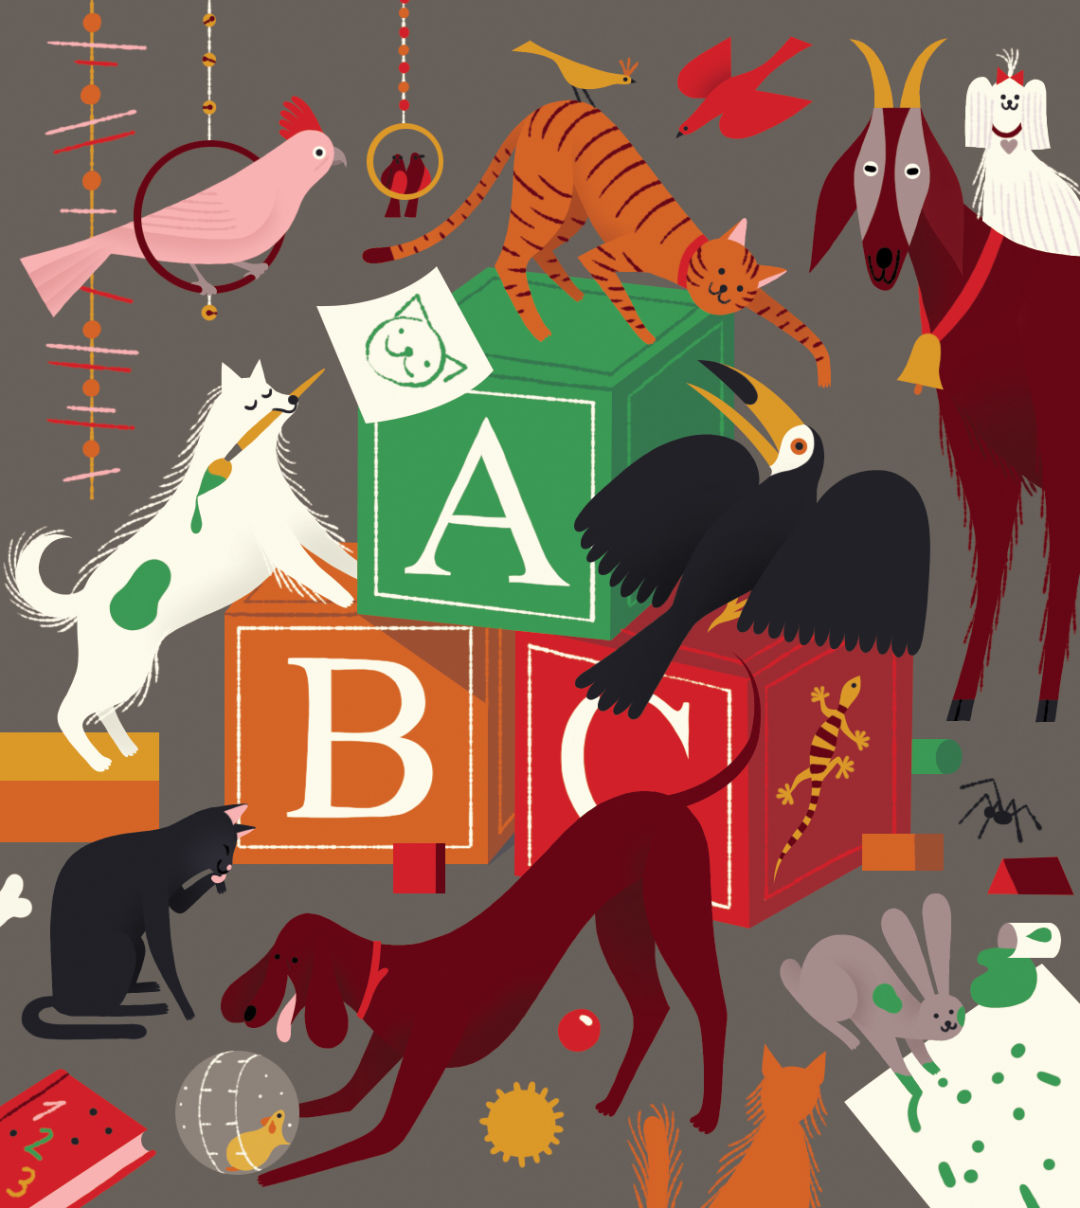 Pomo 0217 pets abc blocks animals illustration y4pmbi